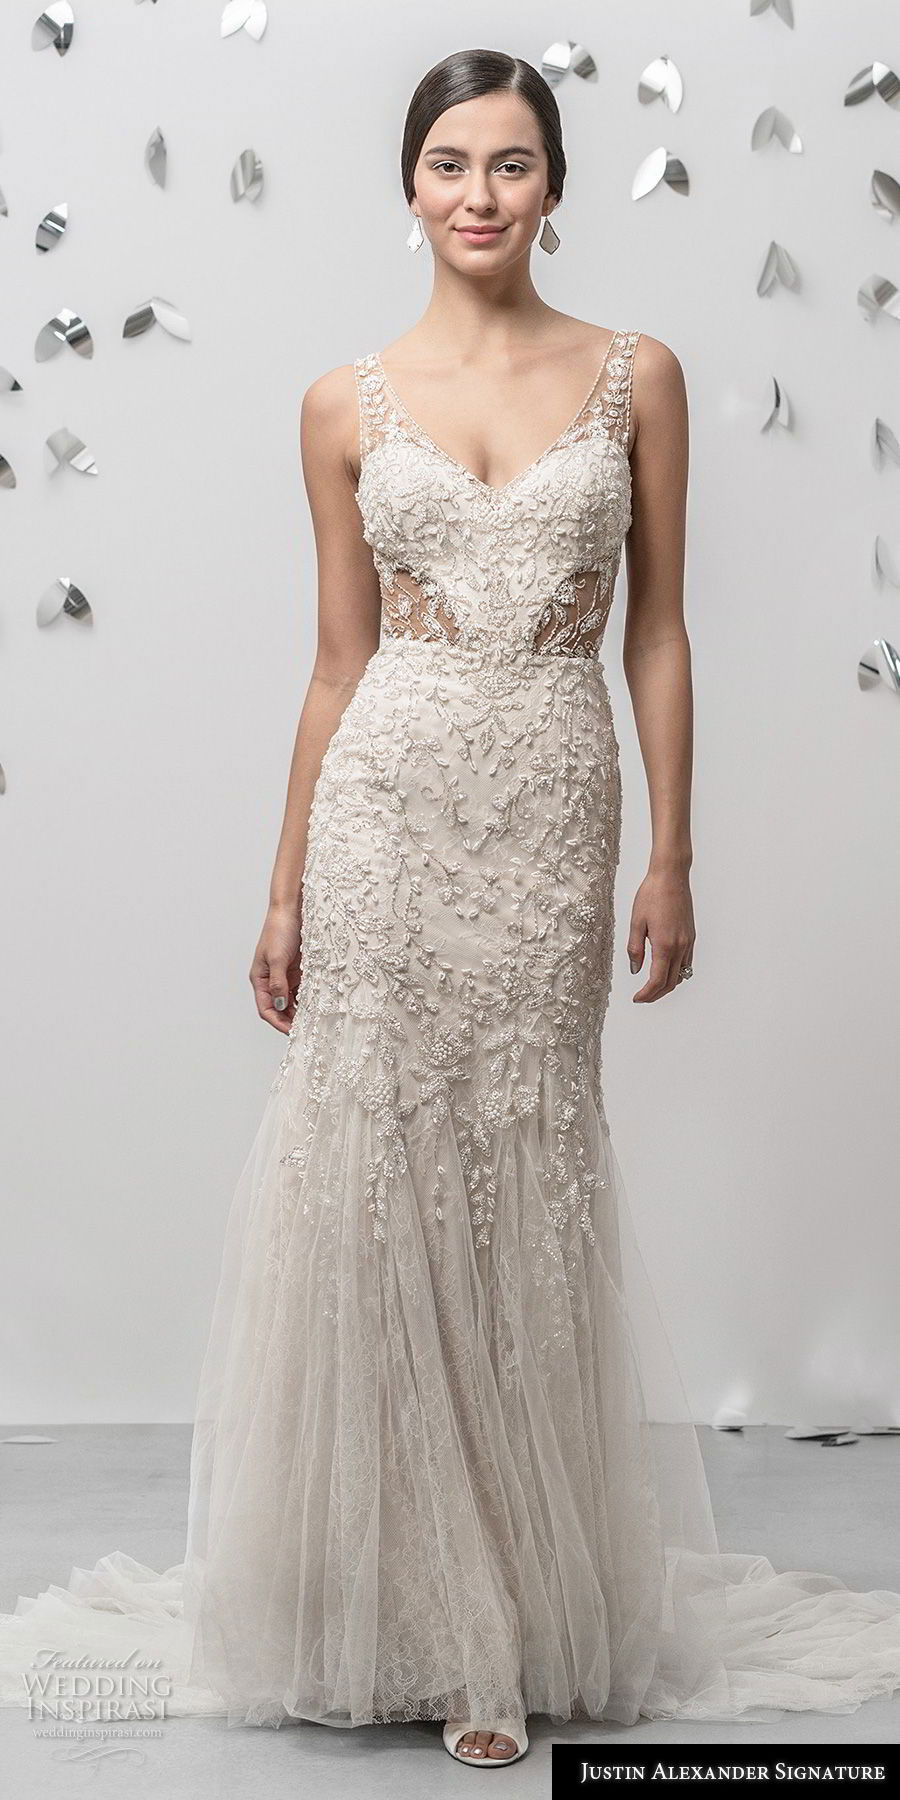 justin alexander fall 2018 signature sleeveless with strap v neck heavily embellished bodice elegant champagne sheath fit and flare wedding dress sheer button back chapel train (18) mv